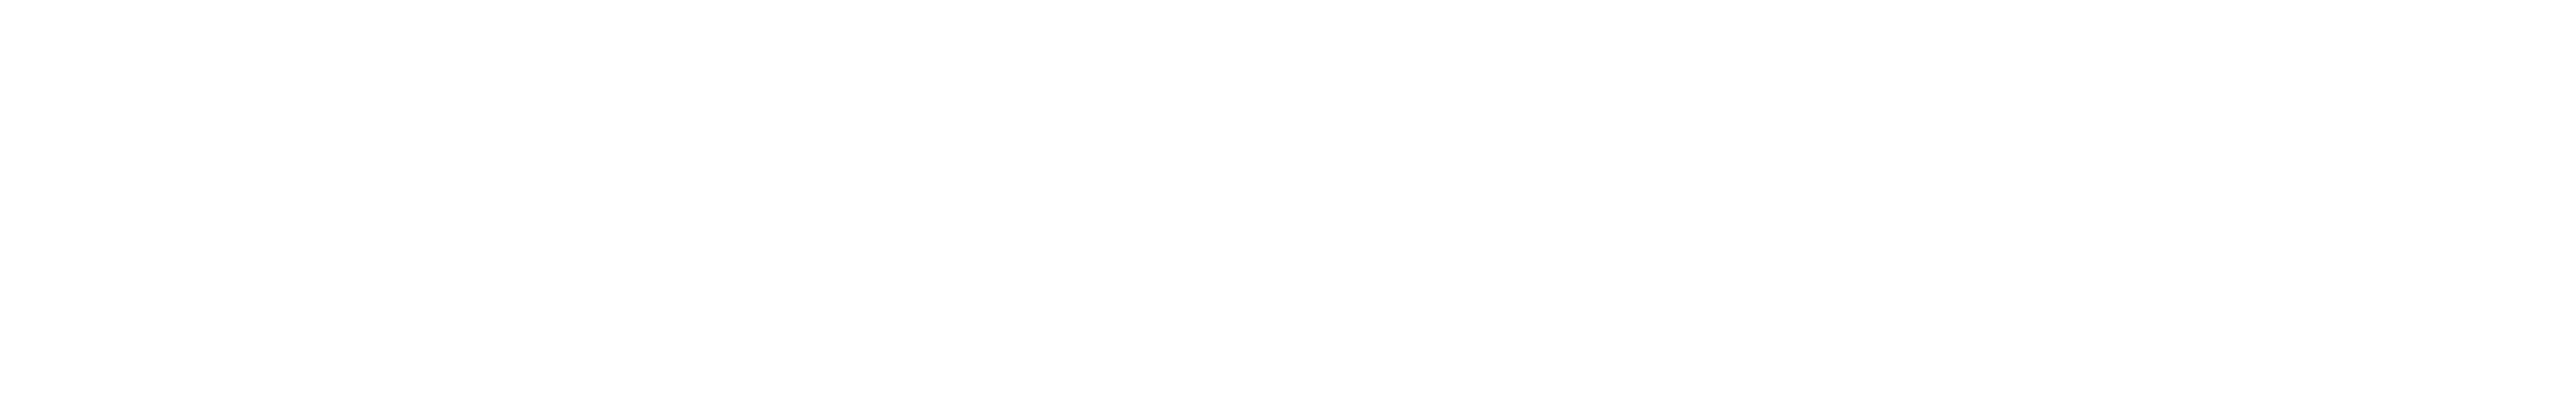 gocardless logo with no background